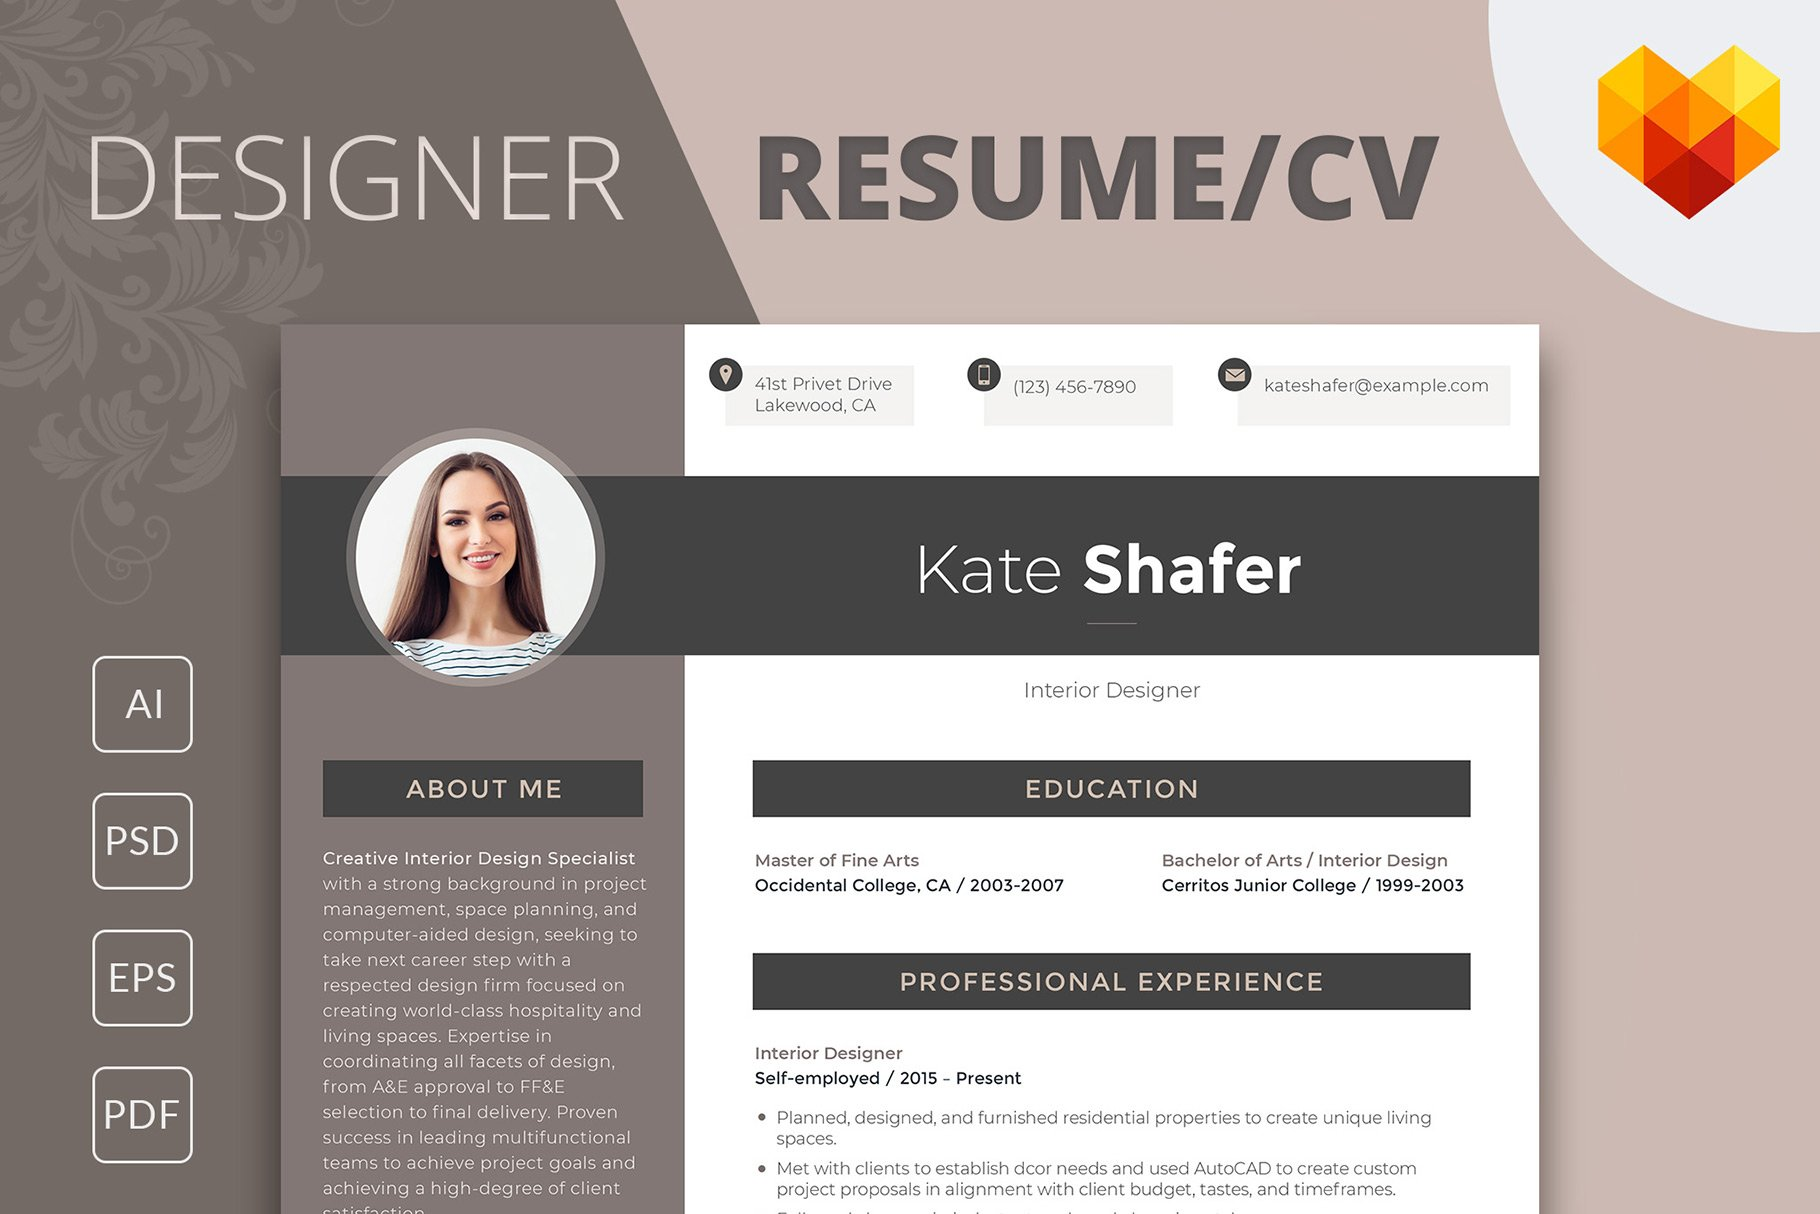 Editable Resume: Interior Designer